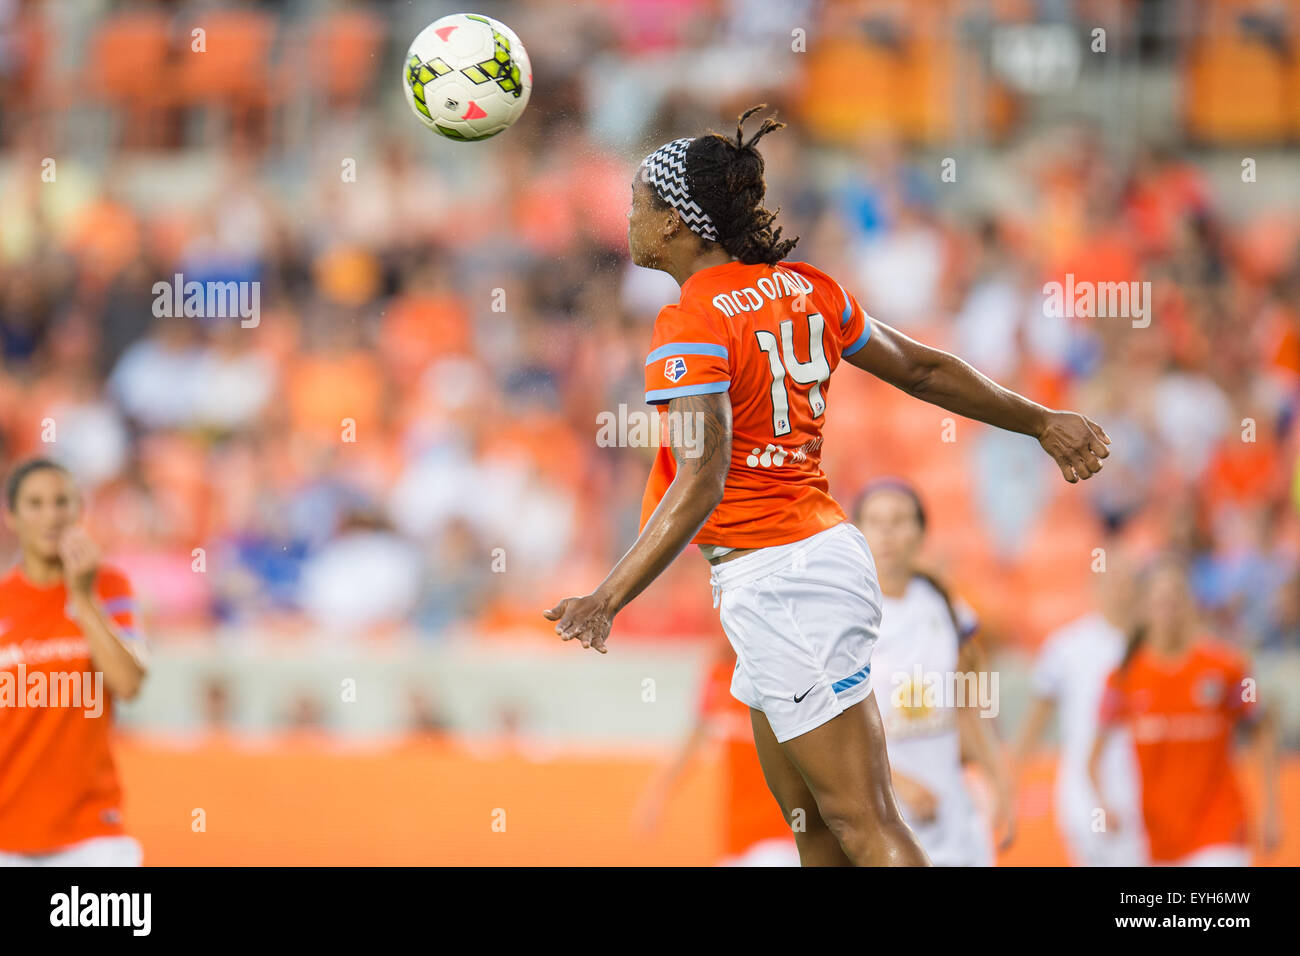 Houston, Texas, USA  29th July, 2015  Houston Dash forward